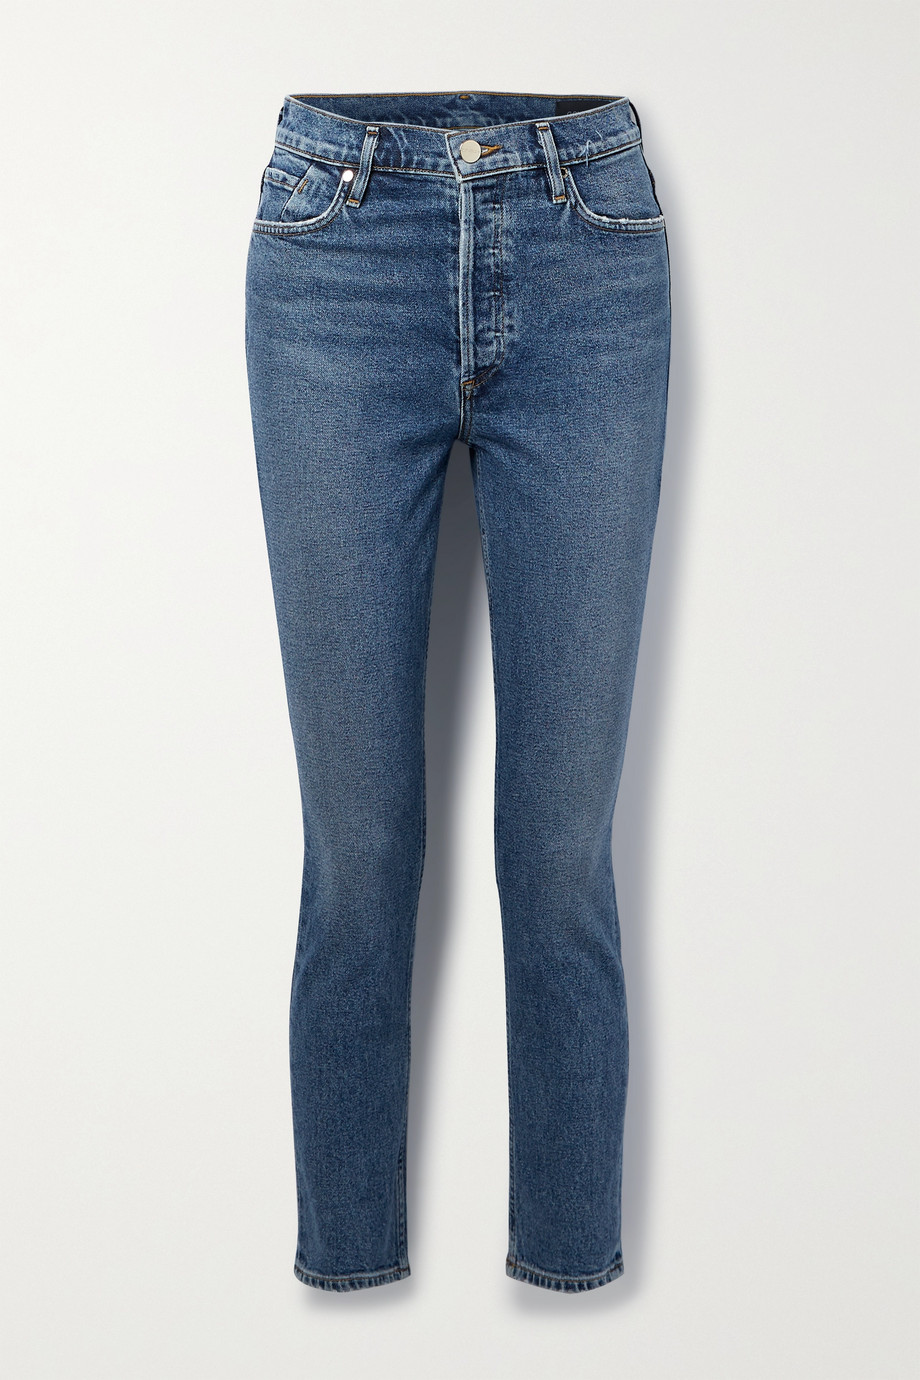 GOLDSIGN High-rise slim-leg jeans